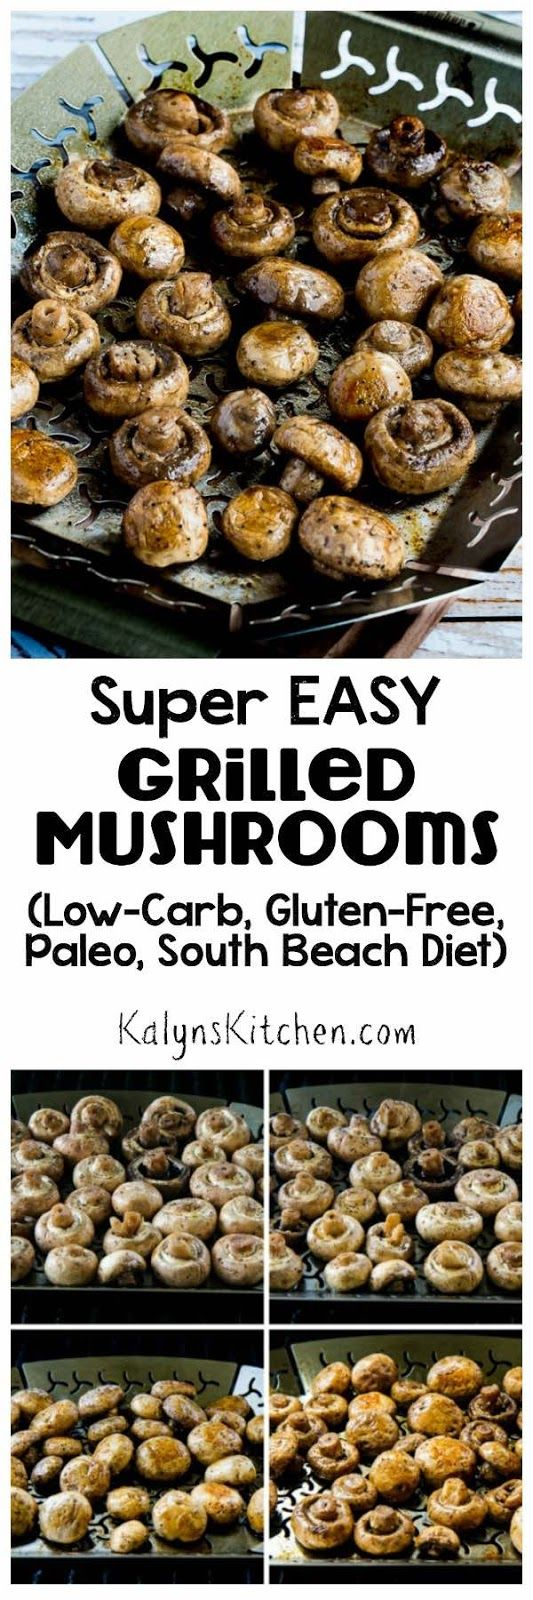 These Super Easy Grilled Mushrooms have only 2 ingredients, and this is a healthy side dish you'll make all summer long! And grilled mushrooms are low-carb, gluten-free, South Beach Diet friendly, and can be Paleo with the right dressing, so you can make them for anyone. [from KalynsKitchen.com]